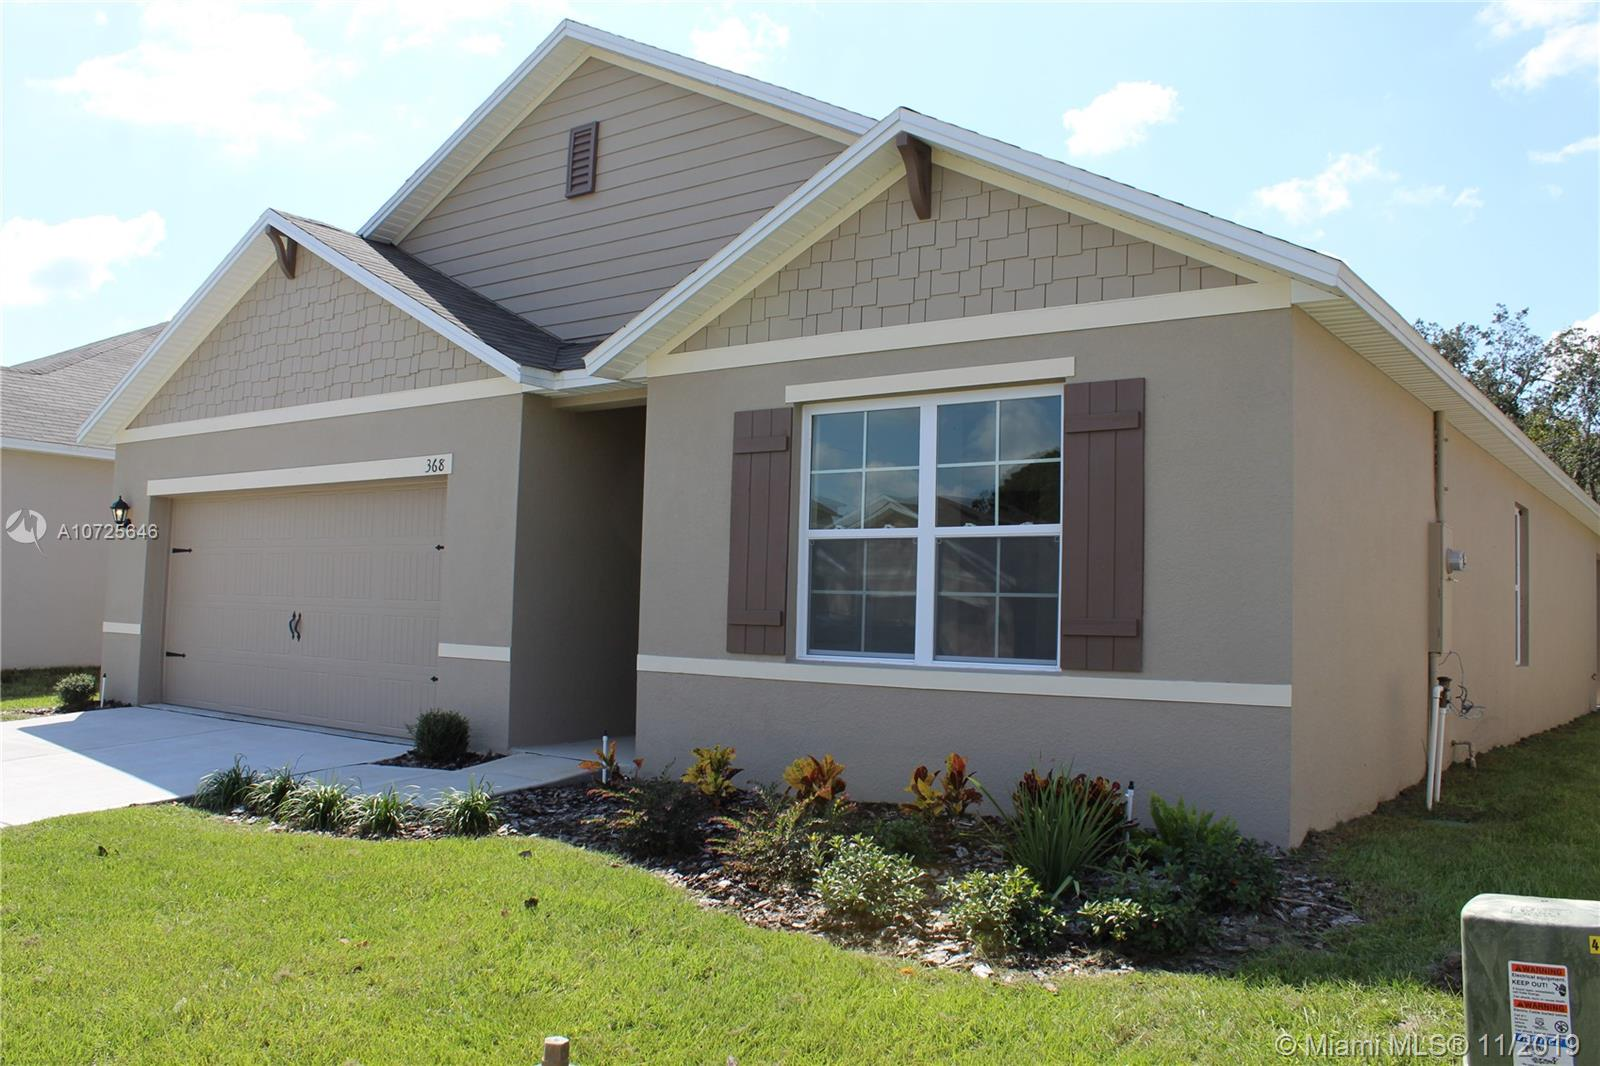 368 tanglewood dr, Other City - In The State Of Florida, FL 33896